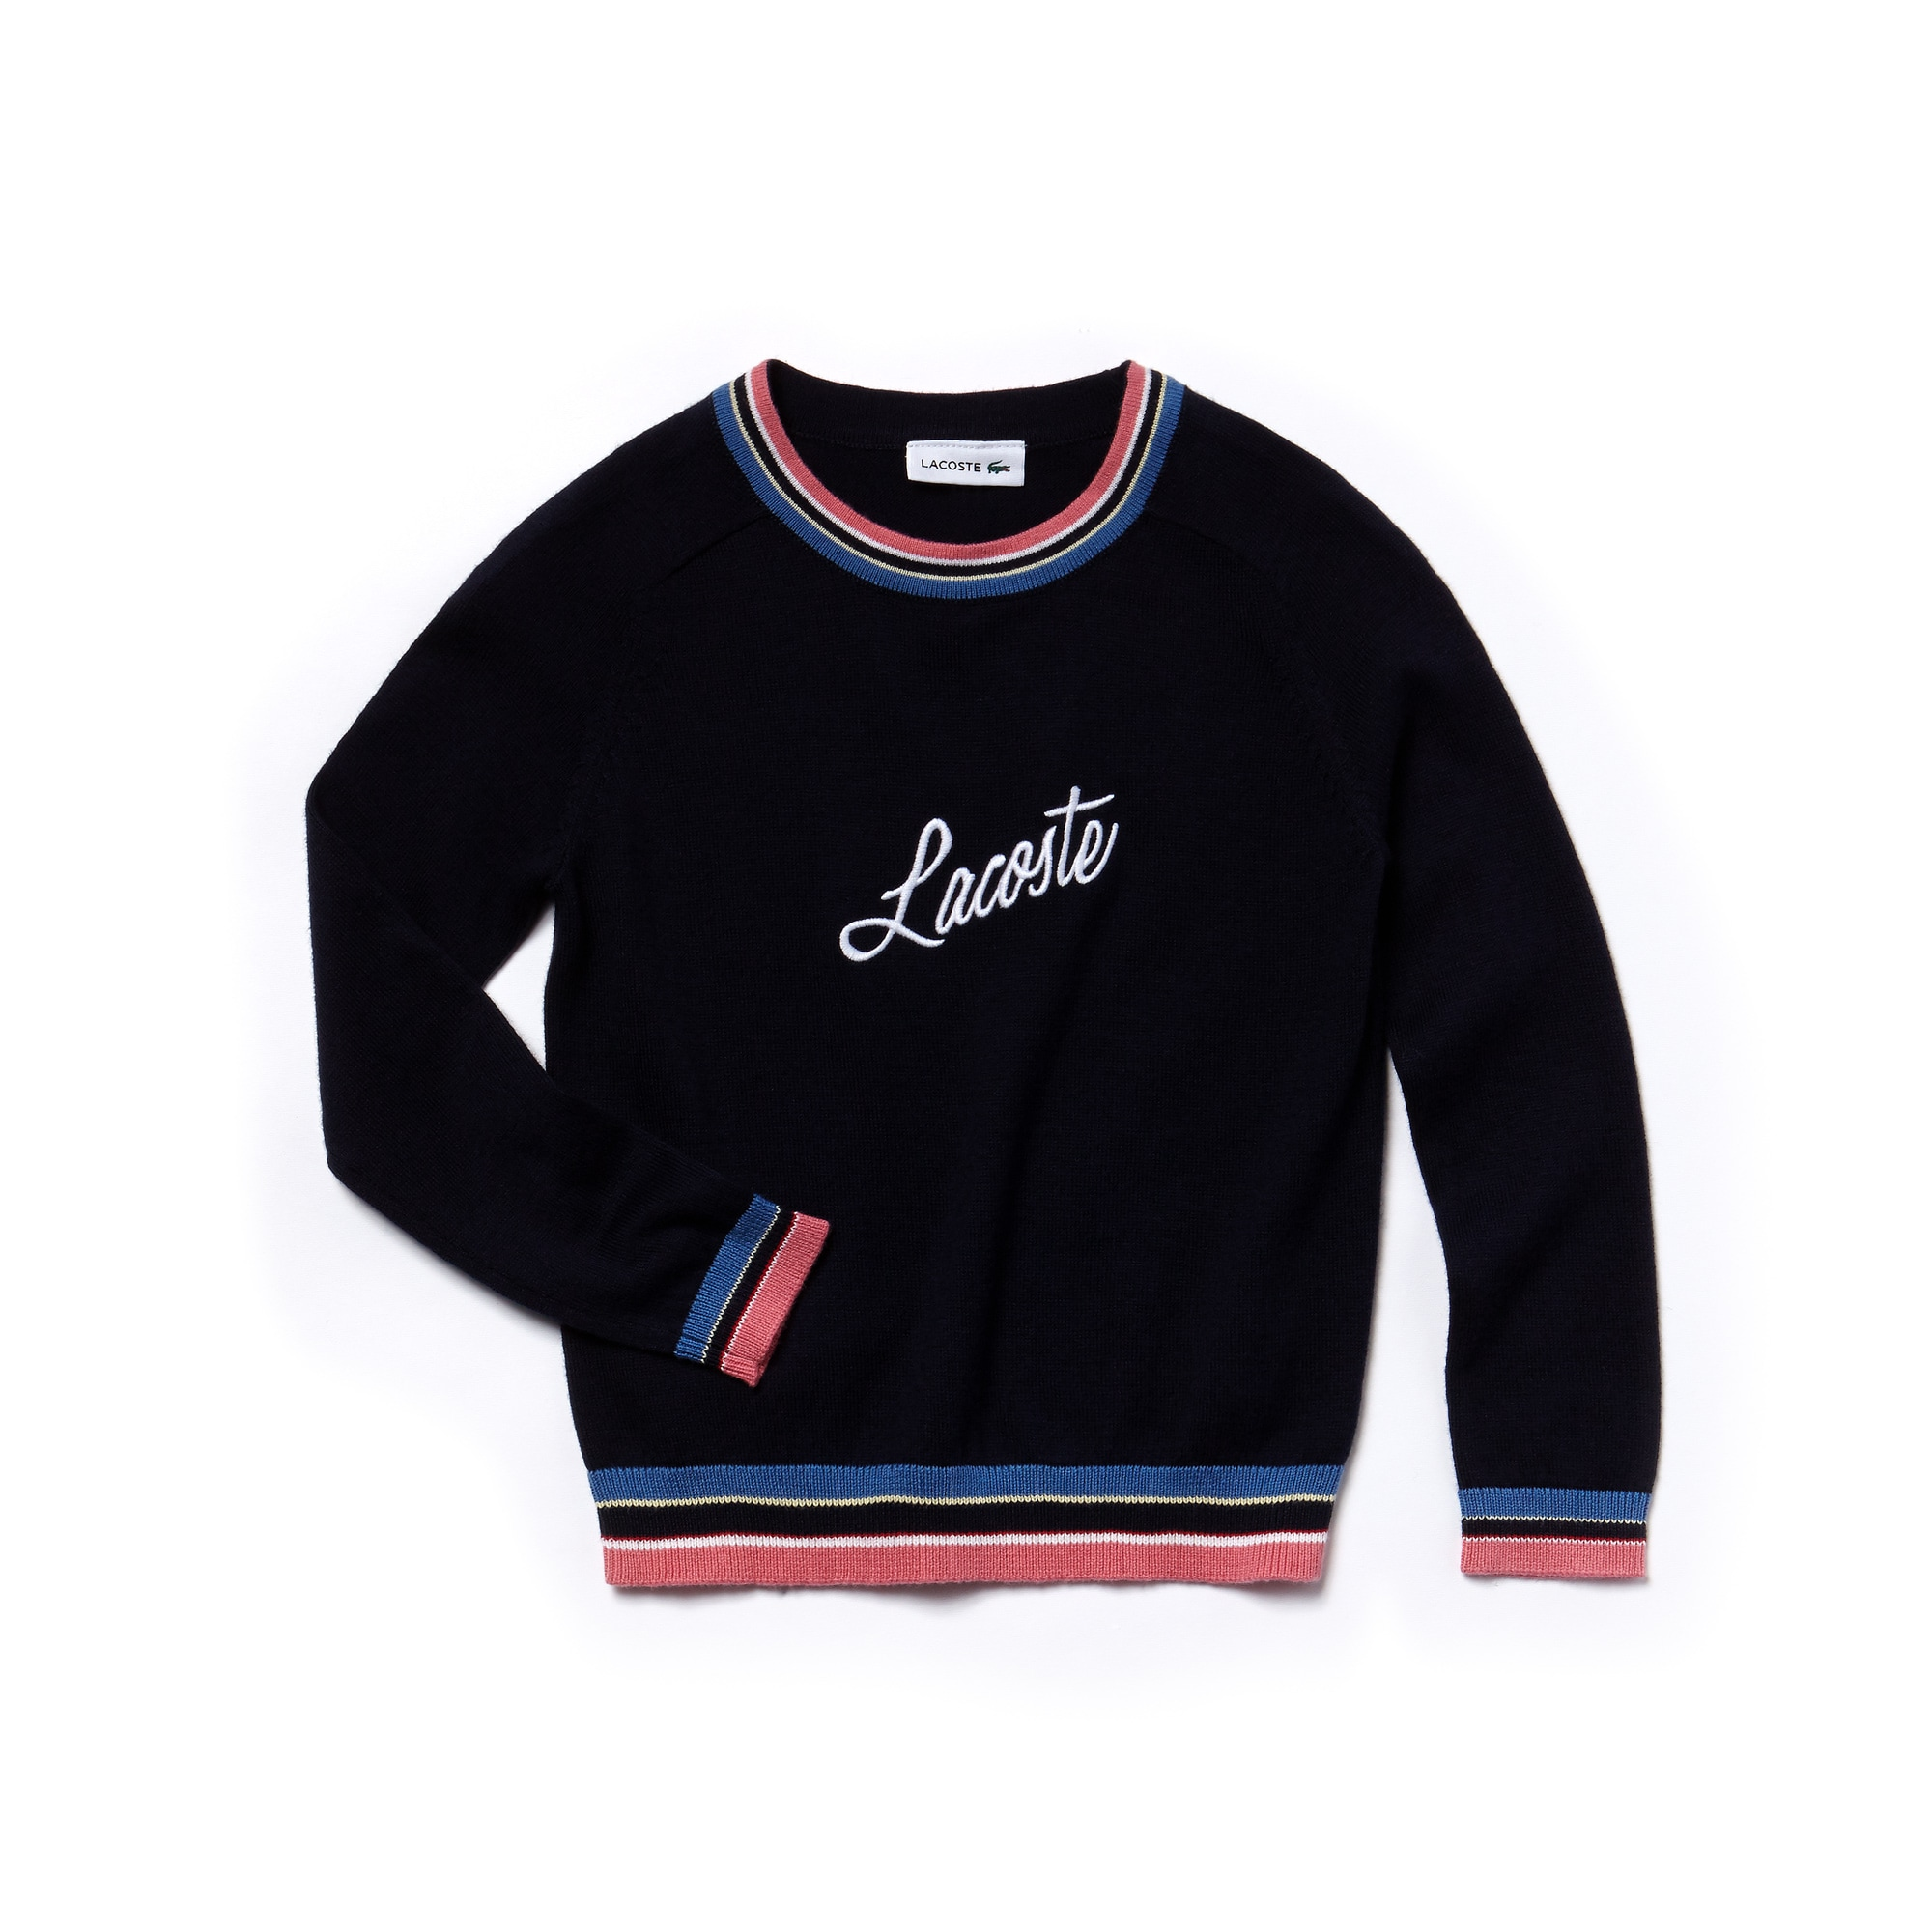 Girls' Crew Neck LACOSTE Embroidery Jersey Sweater